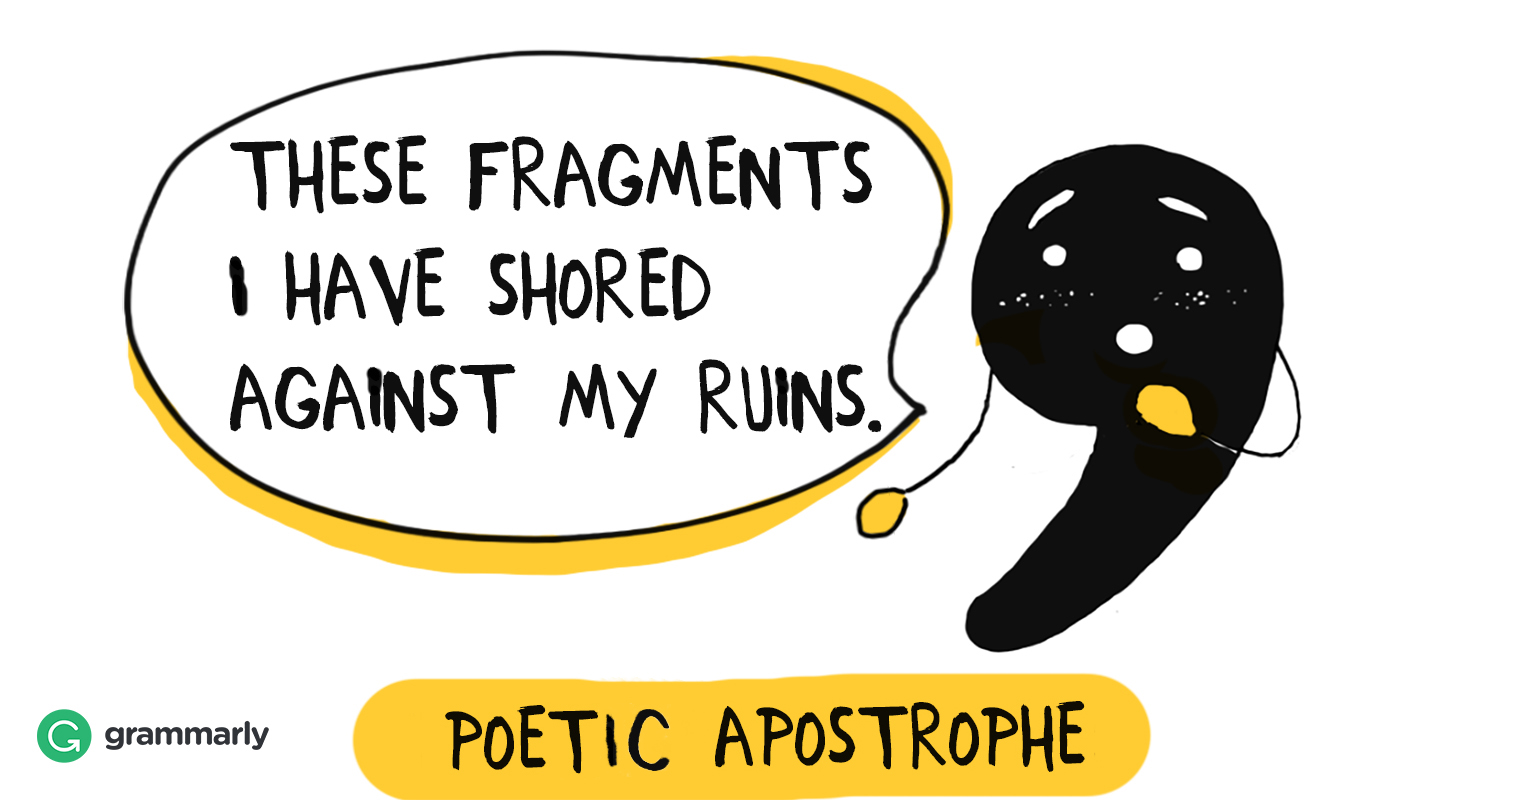 Everything You Want to Know About Poetic Apostrophe